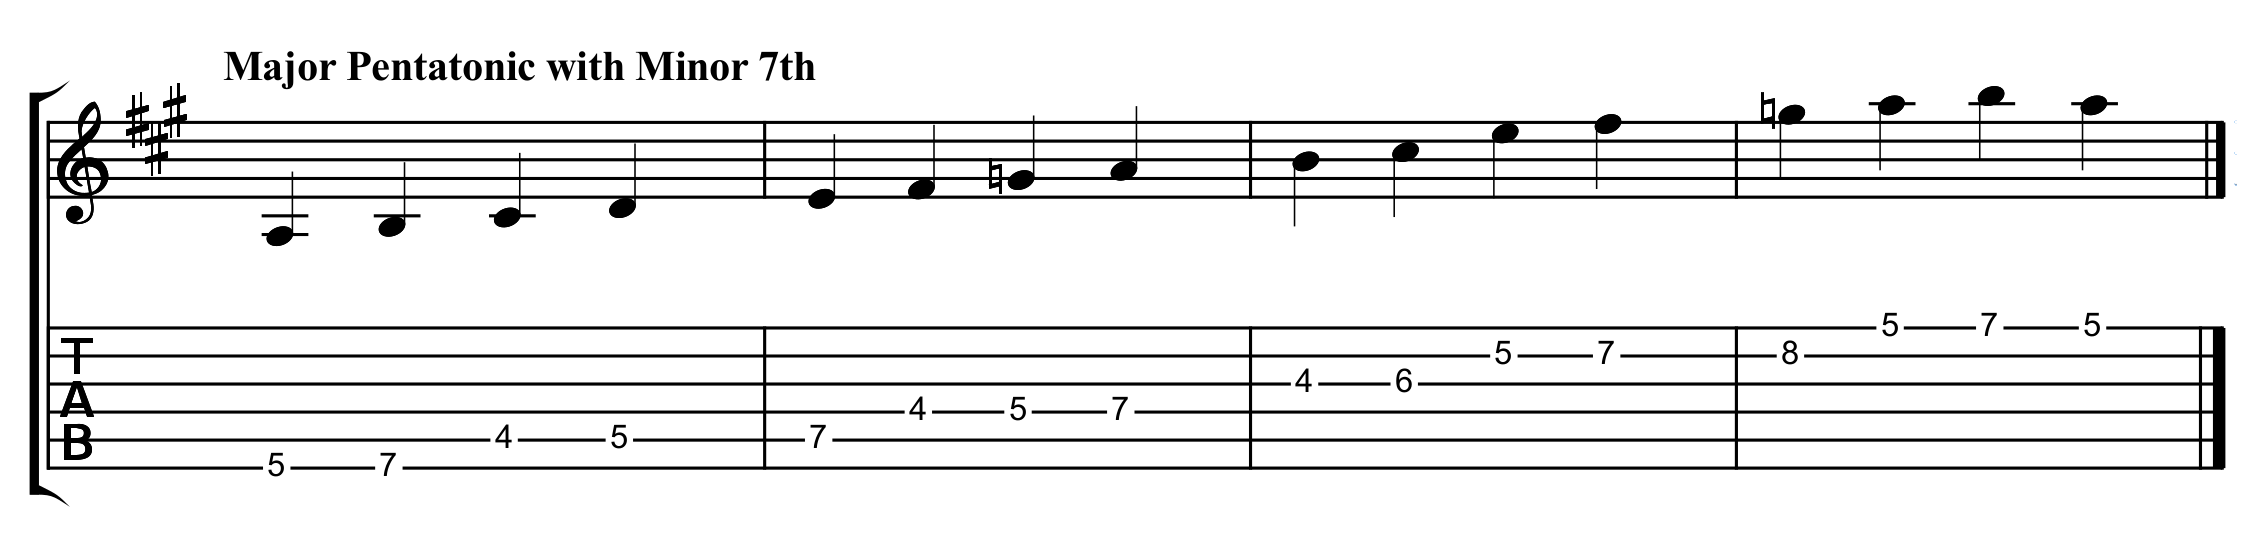 the A major pentatonic scale with an added minor 7th to create a Mixolydian mode sound